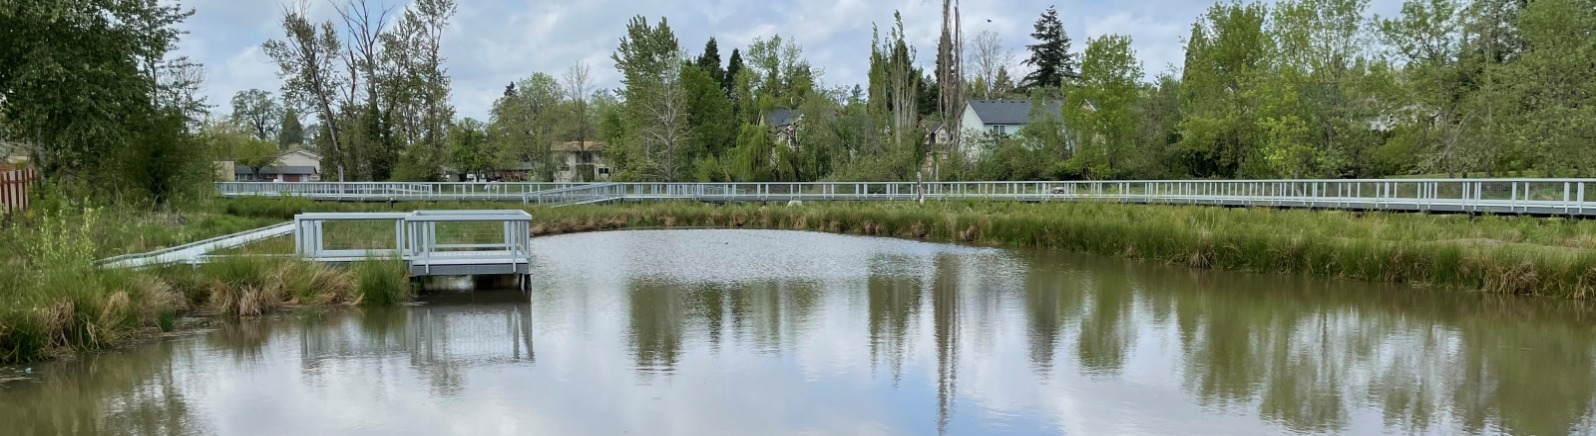 view of pond with paved trails winding around it and a lookout spot on the left side